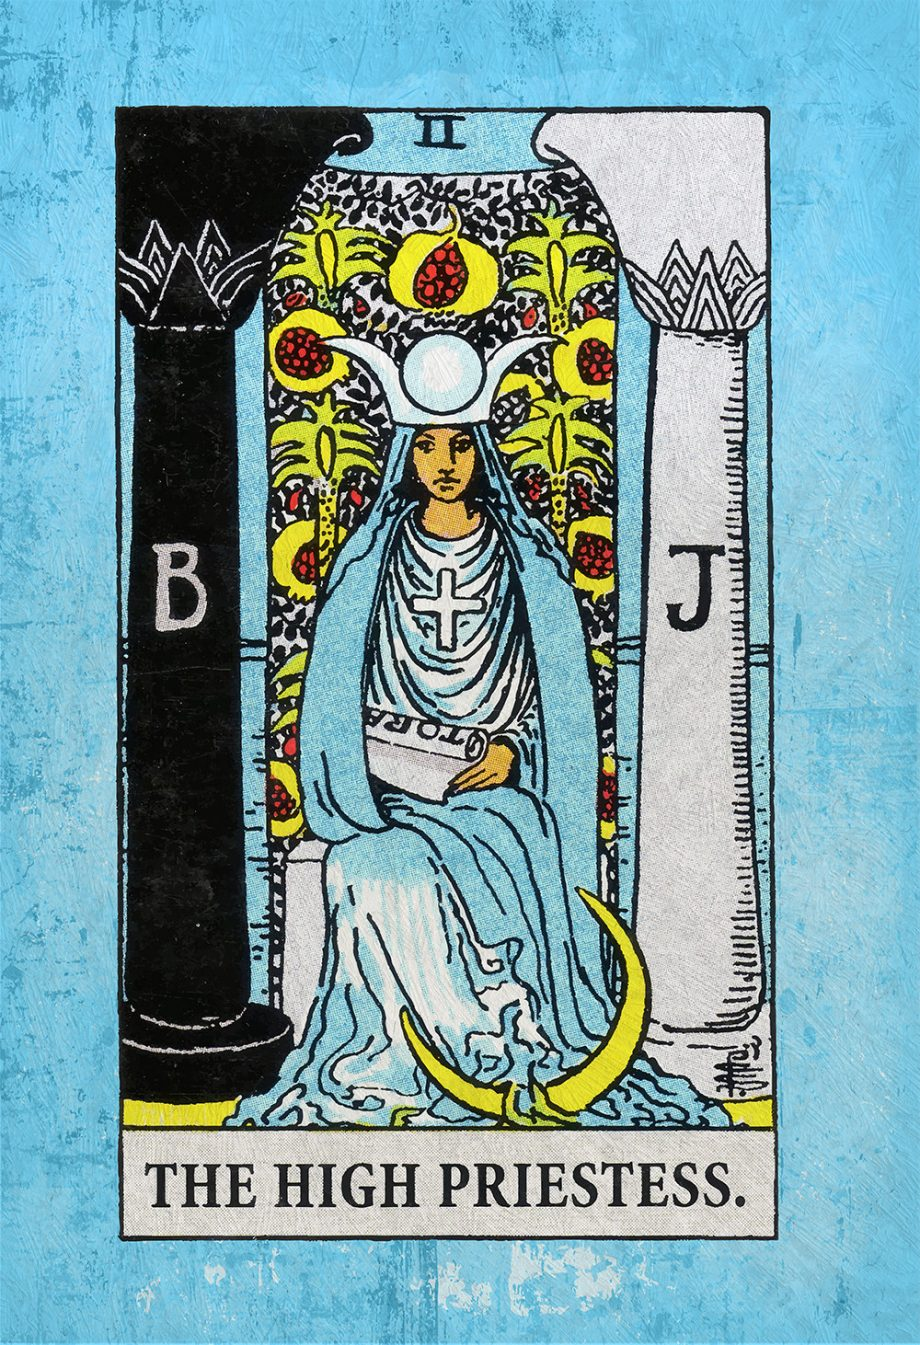 tarot-print-high-priestess-retro-illustration-art-rider-print-vintage-giclee-on-cotton-canvas-and-satin-photo-paper-5817ac634.jpg